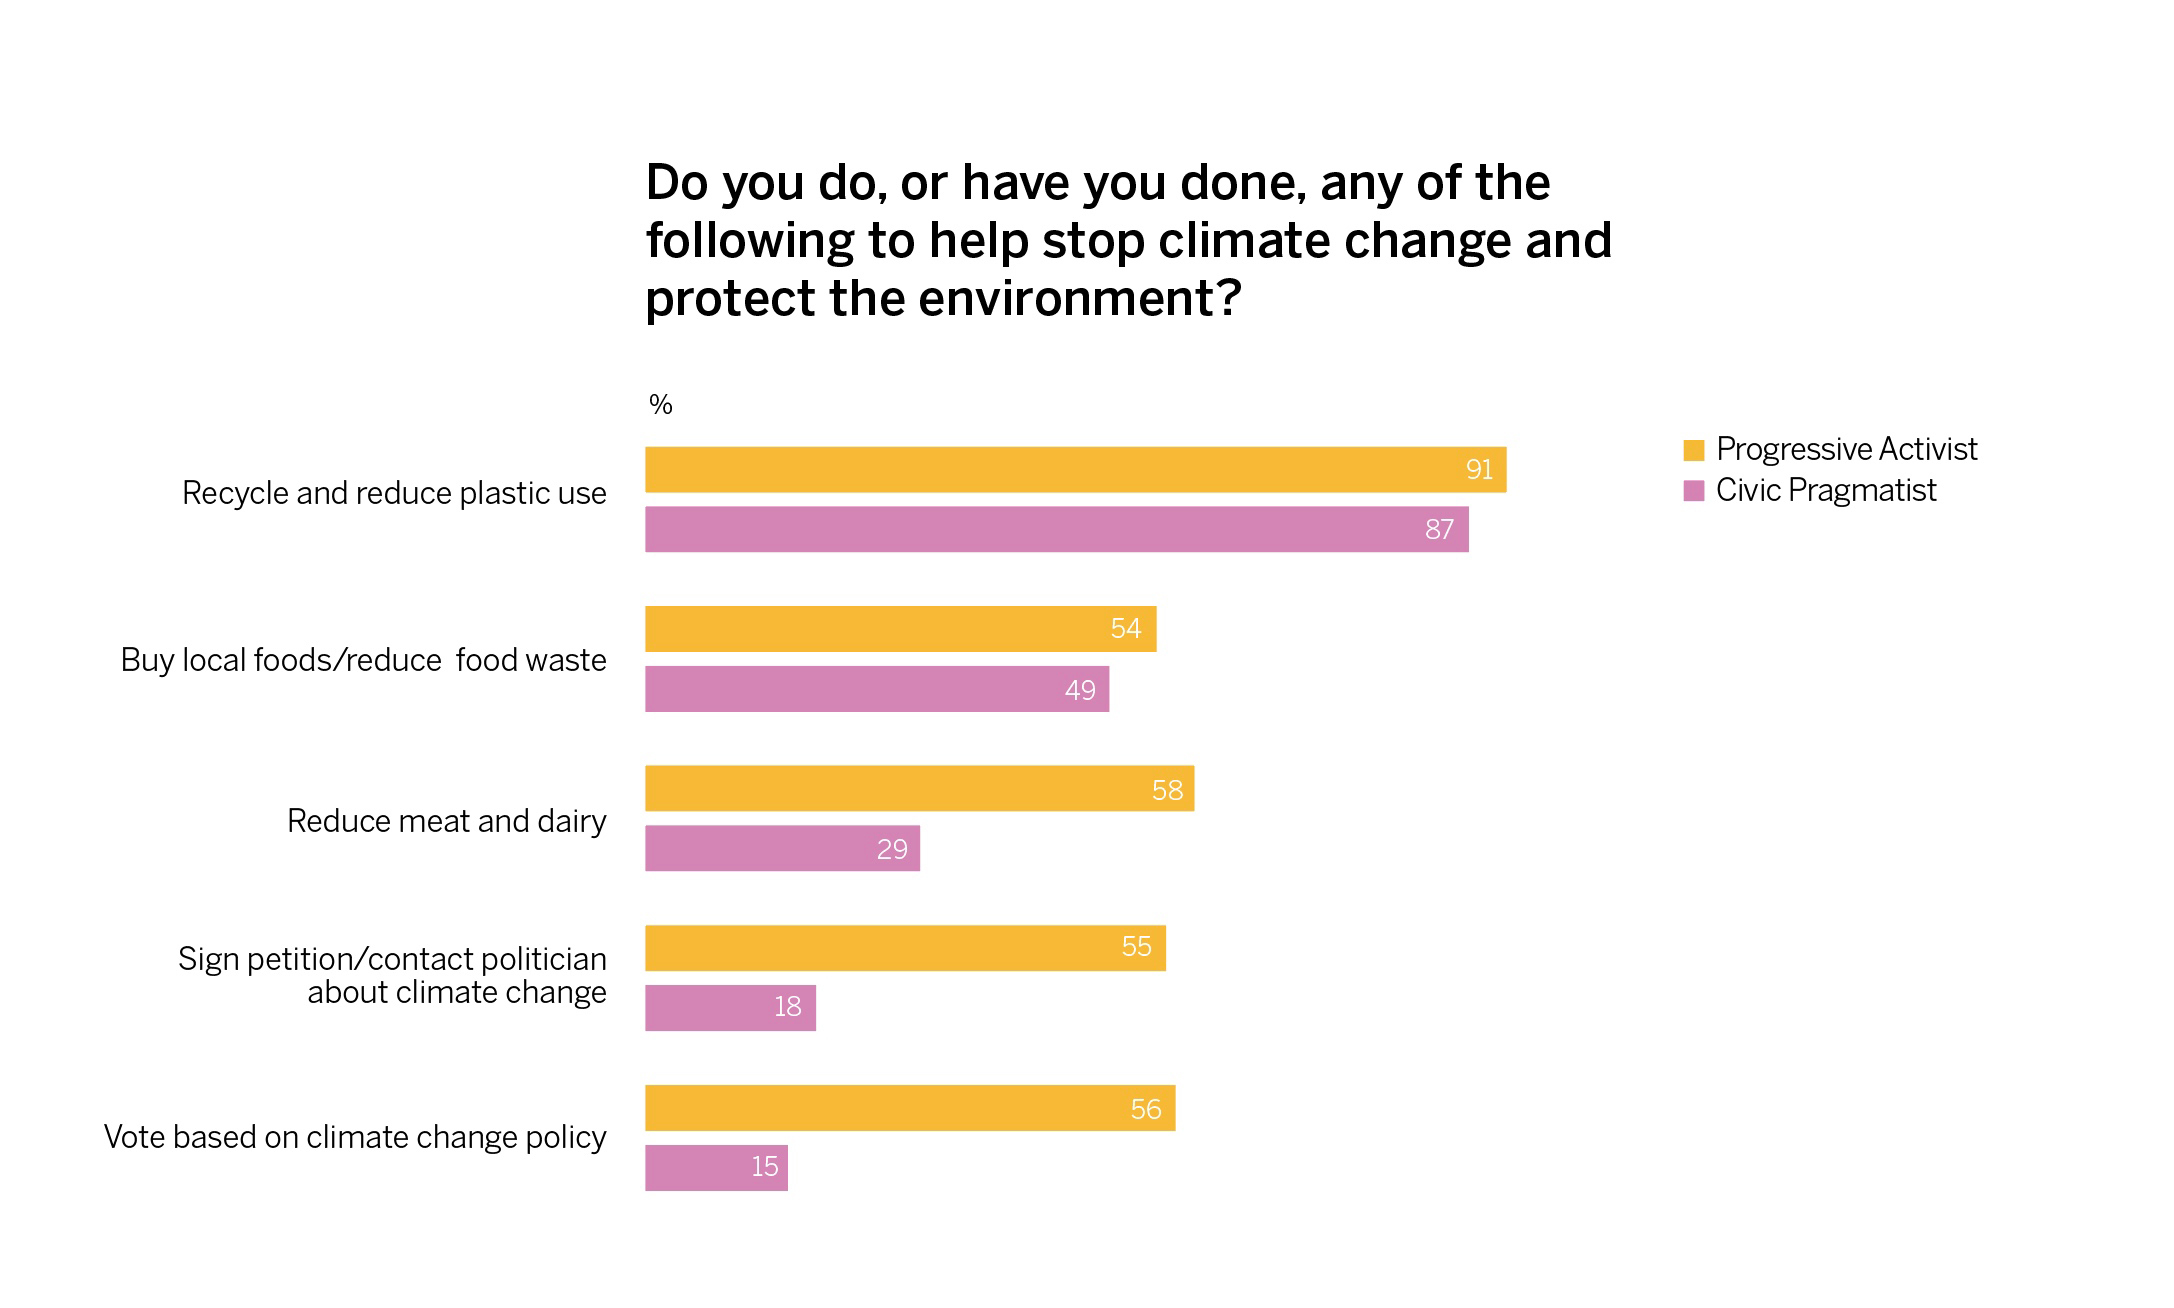 Personal actions to stop climate change: Progressive Activists and Civic Pragmatists